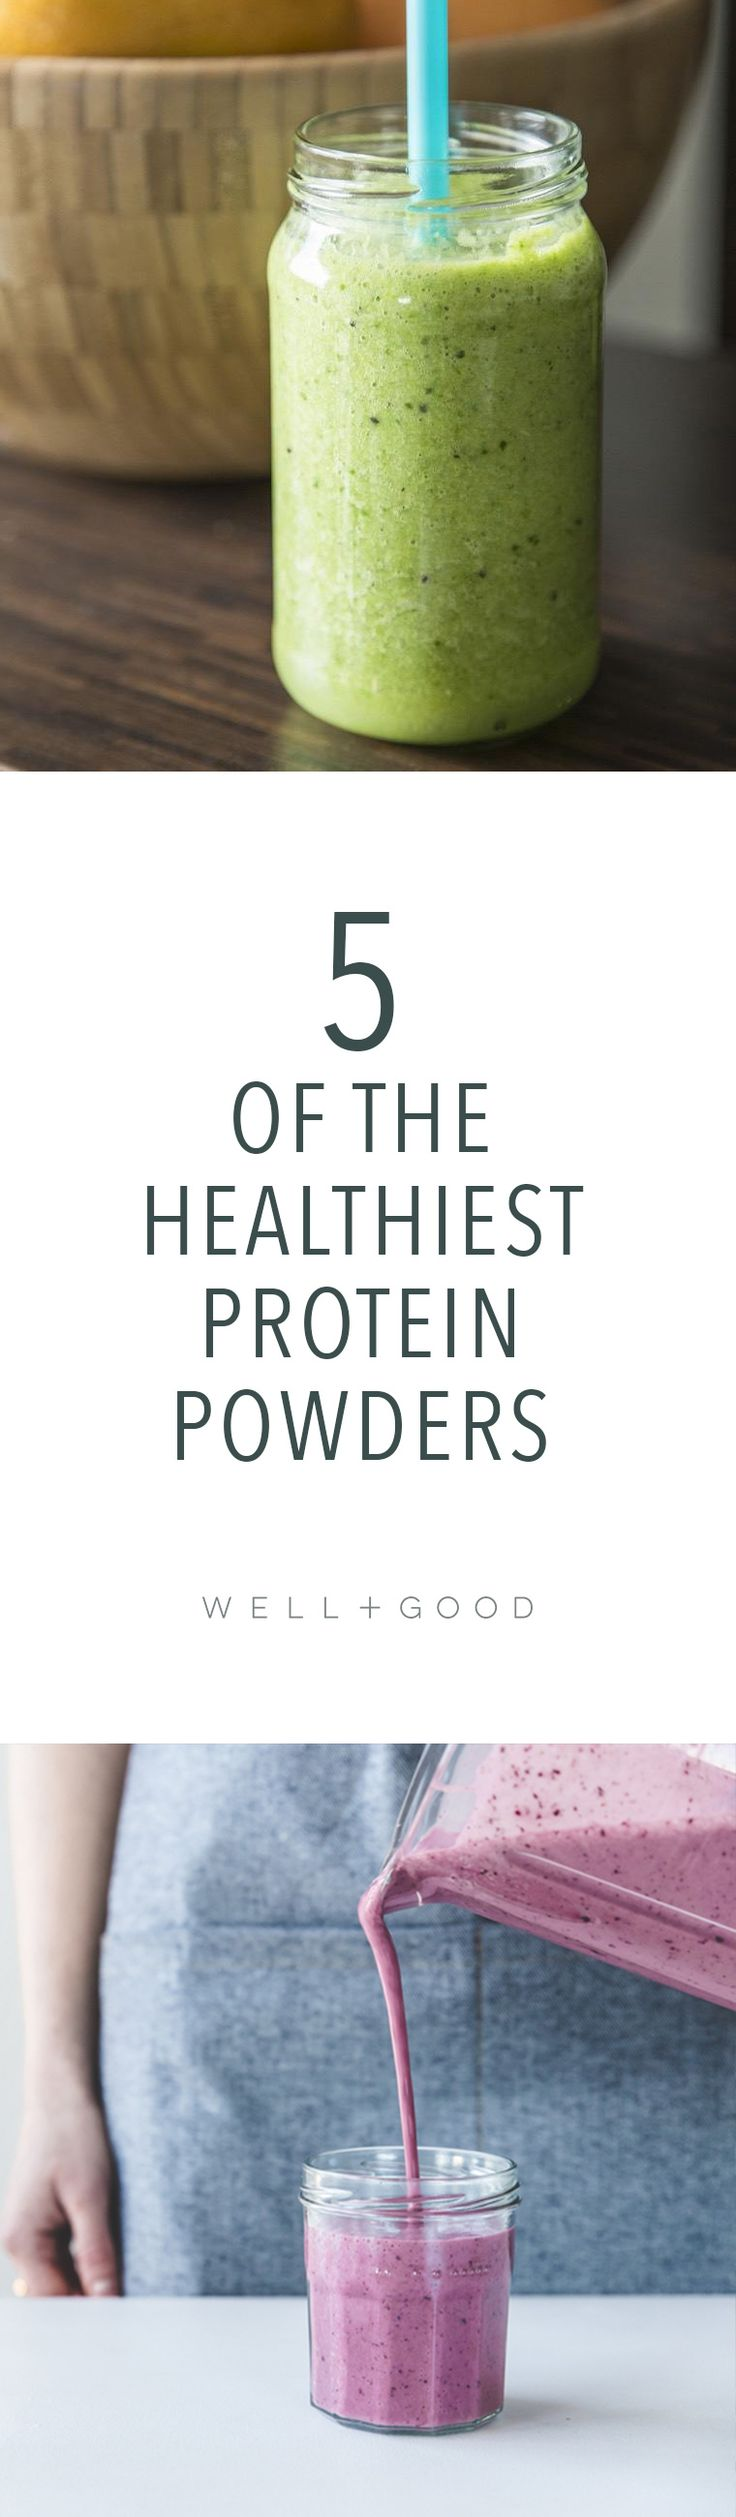 5 healthiest protein powders to try